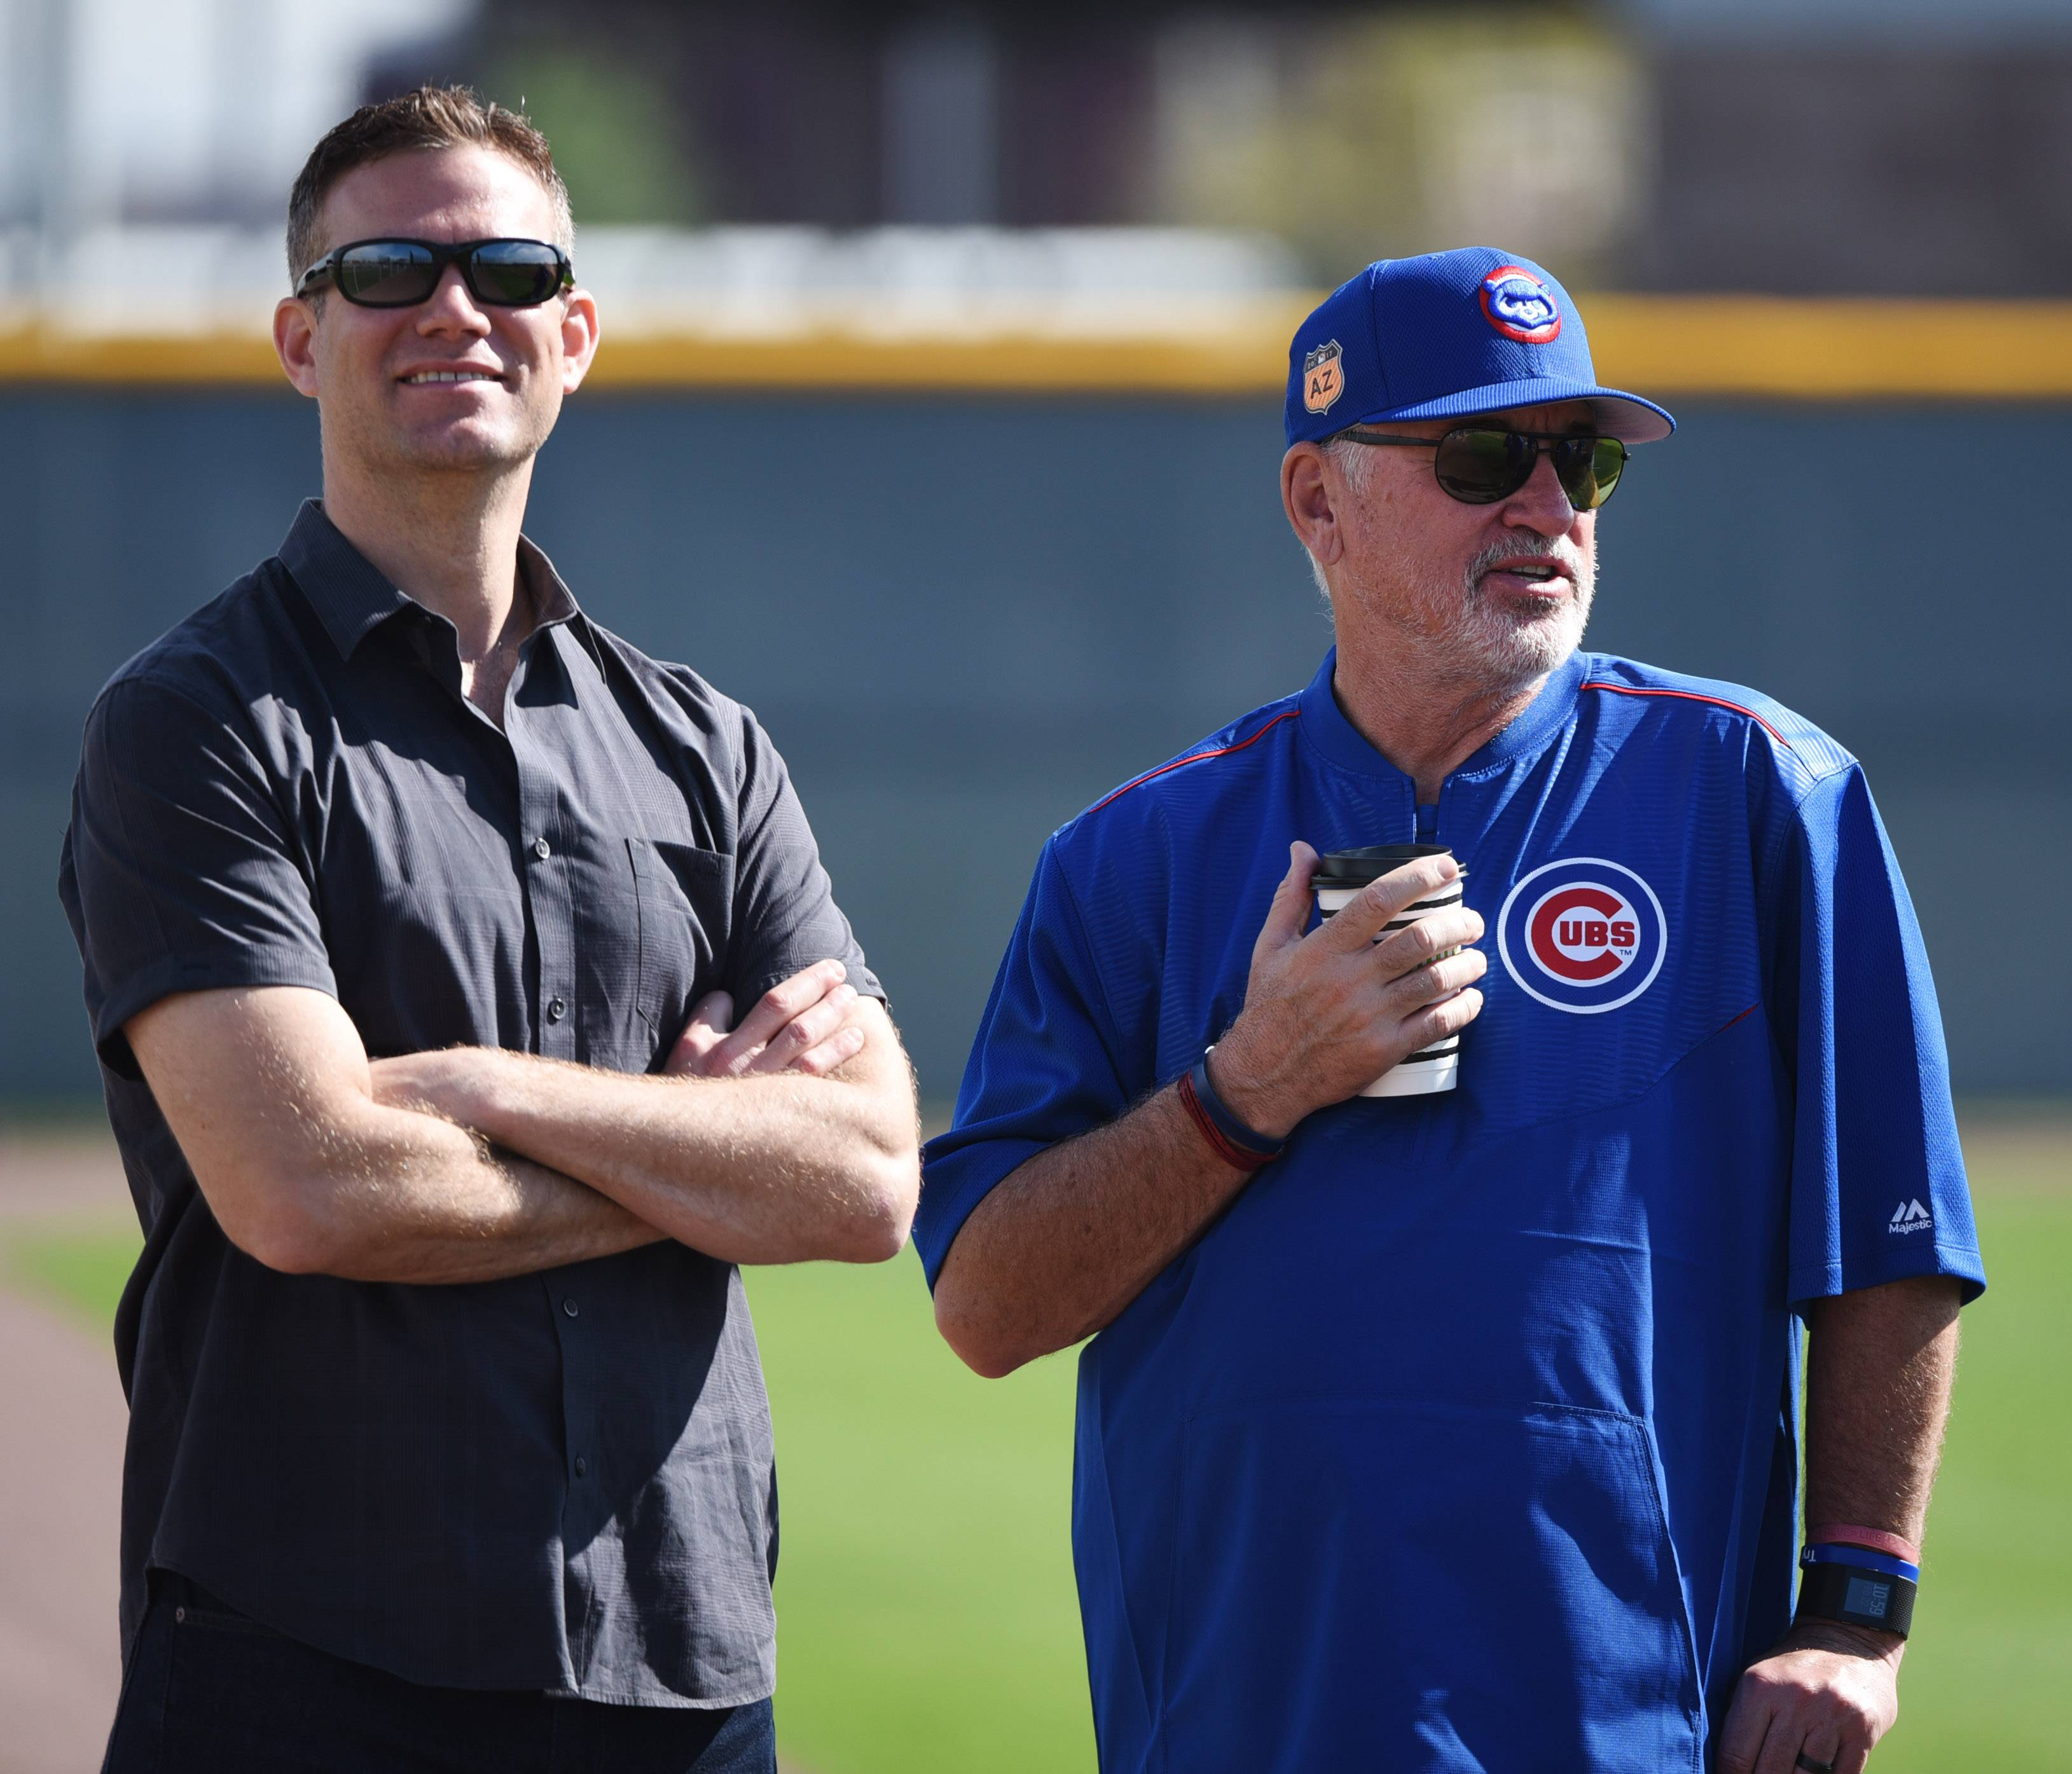 Theo Epstein, left, has followed through on the promises he made when he join the Chicago Cubs, yet some fans are unhappy with the way this season has gone.